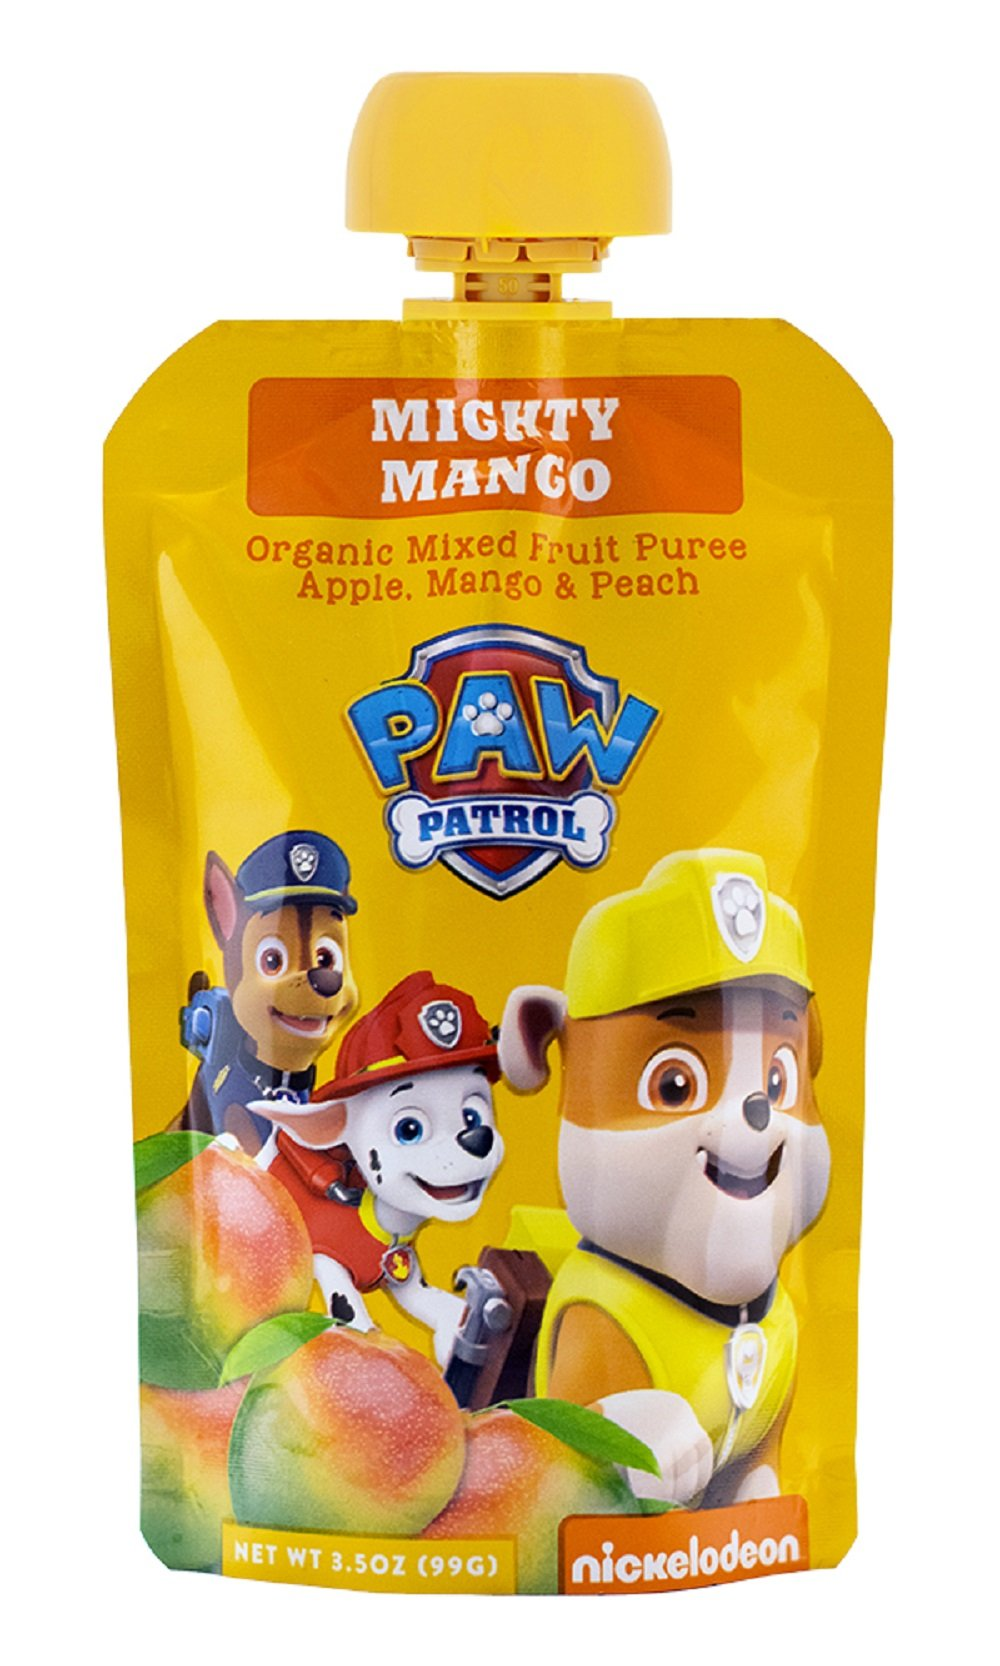 Paw Patrol Mighty Mango Organic Mixed Fruit Squeeze Pouch, 3.5 oz. (Pack Of 10)